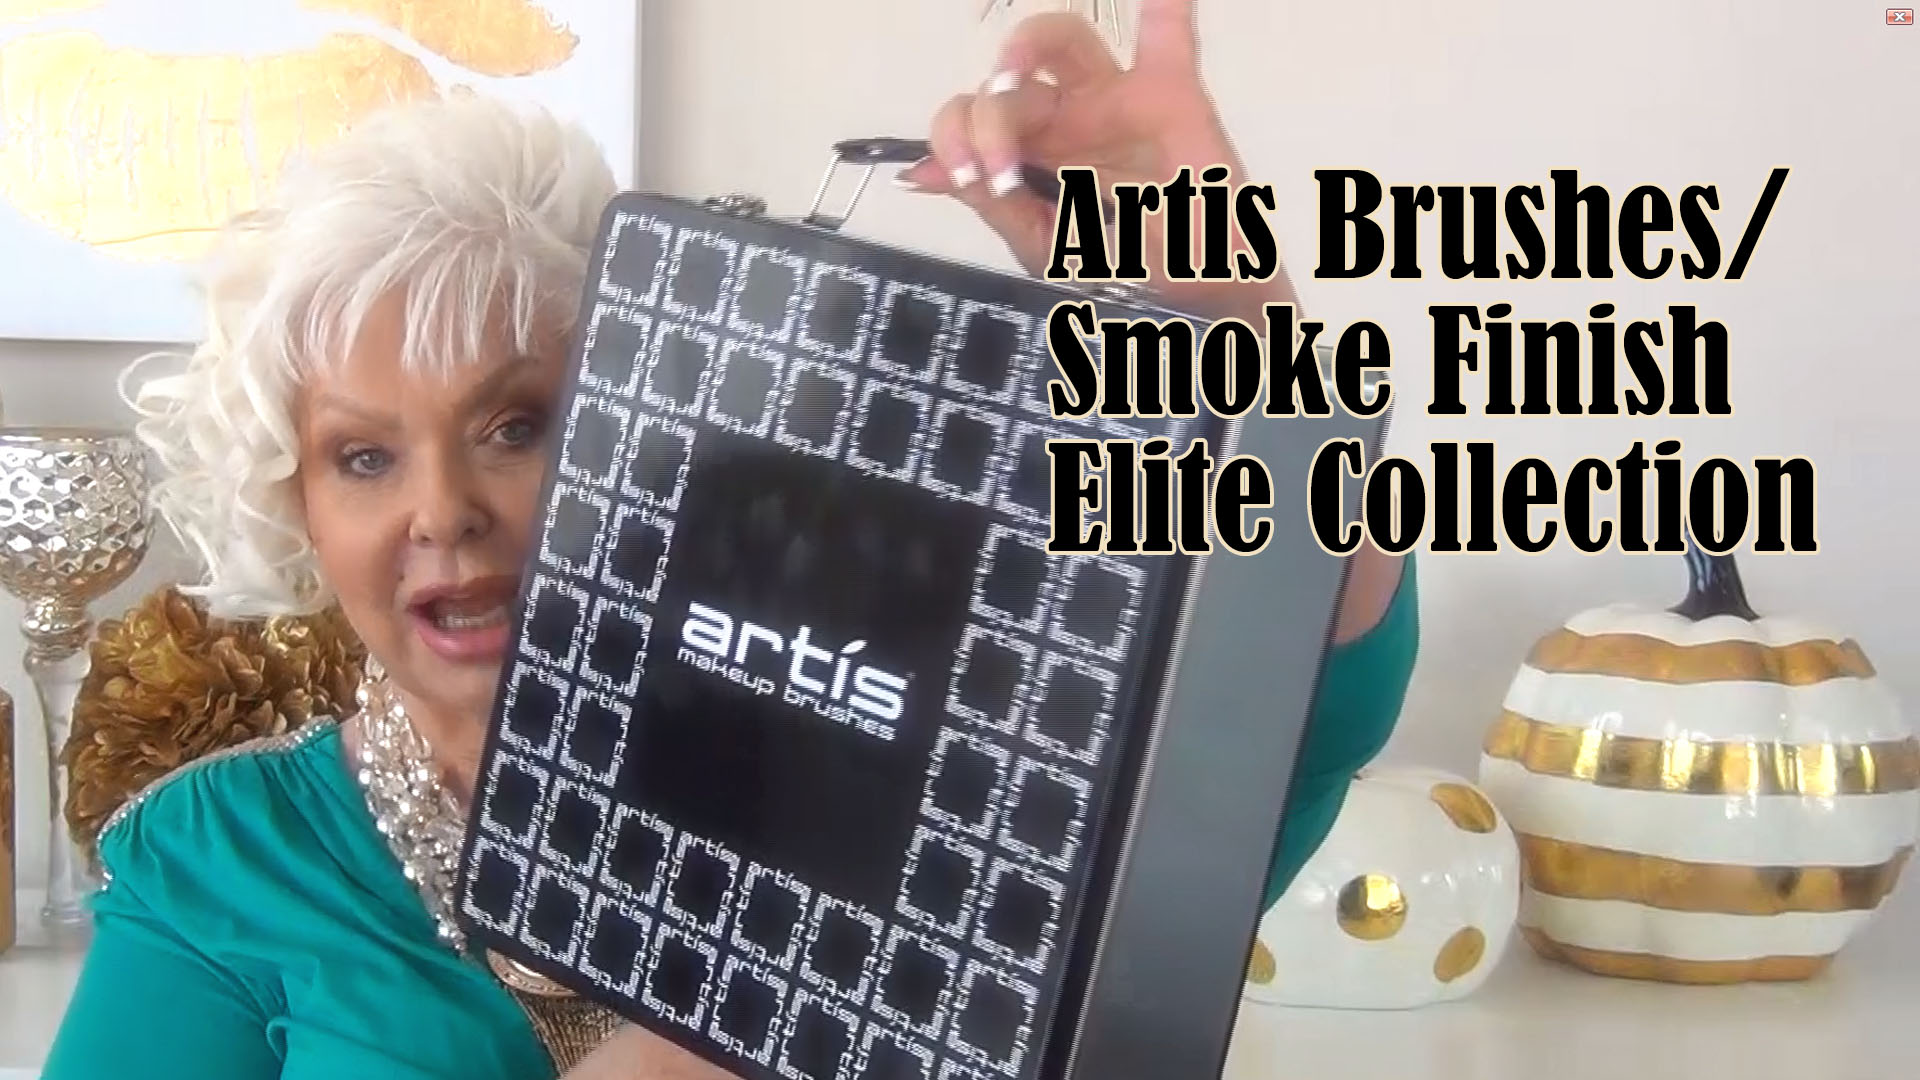 My Review of Artis Brushes/Smoke Finish Elite Collection